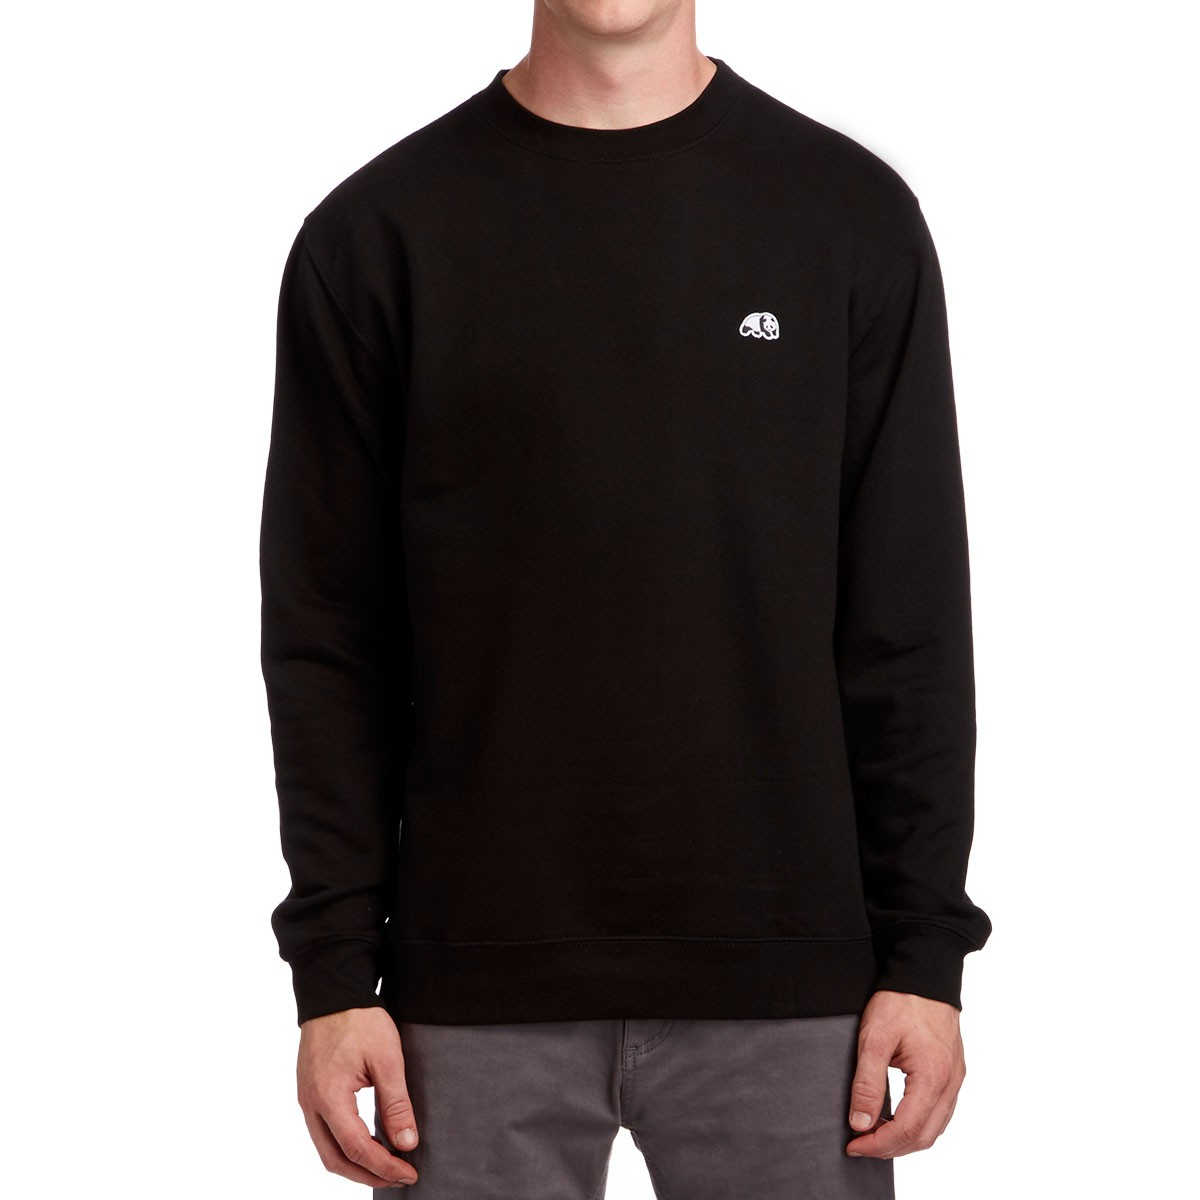 Enjoi Panda Patch Crew Sweatshirt - Black